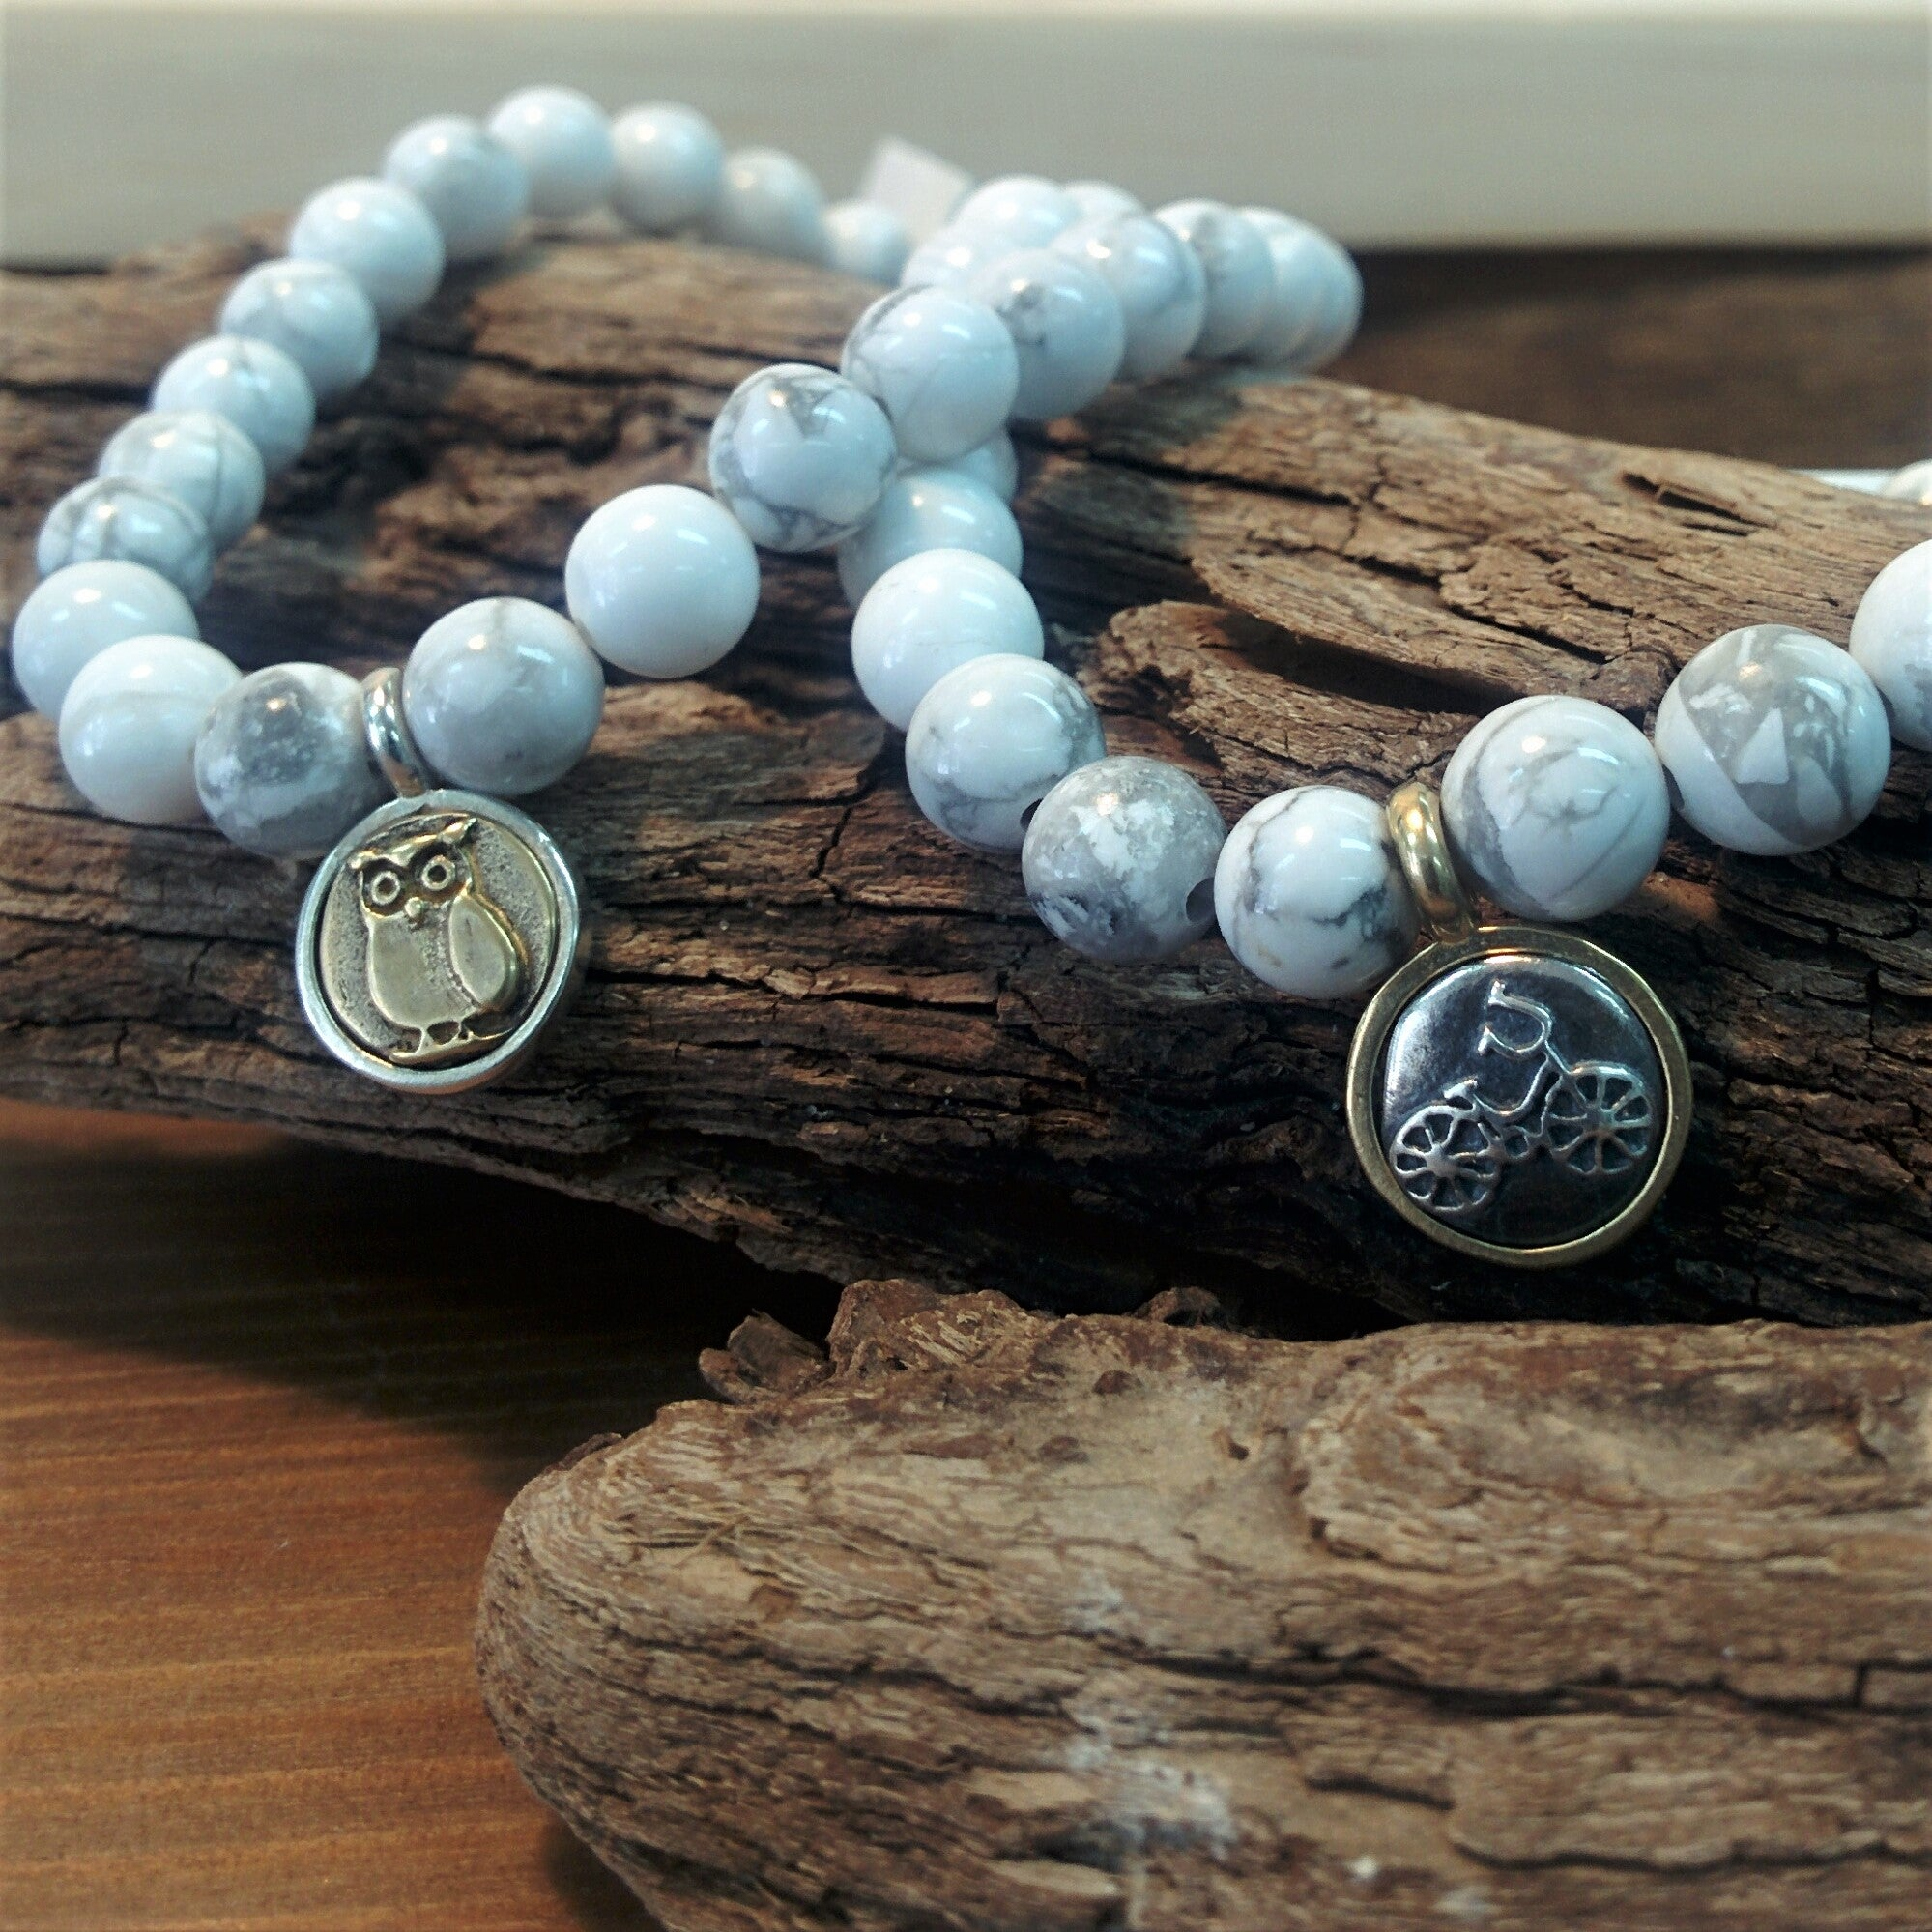 howlite bracelet with charm handmade in Canada by Kate Singer